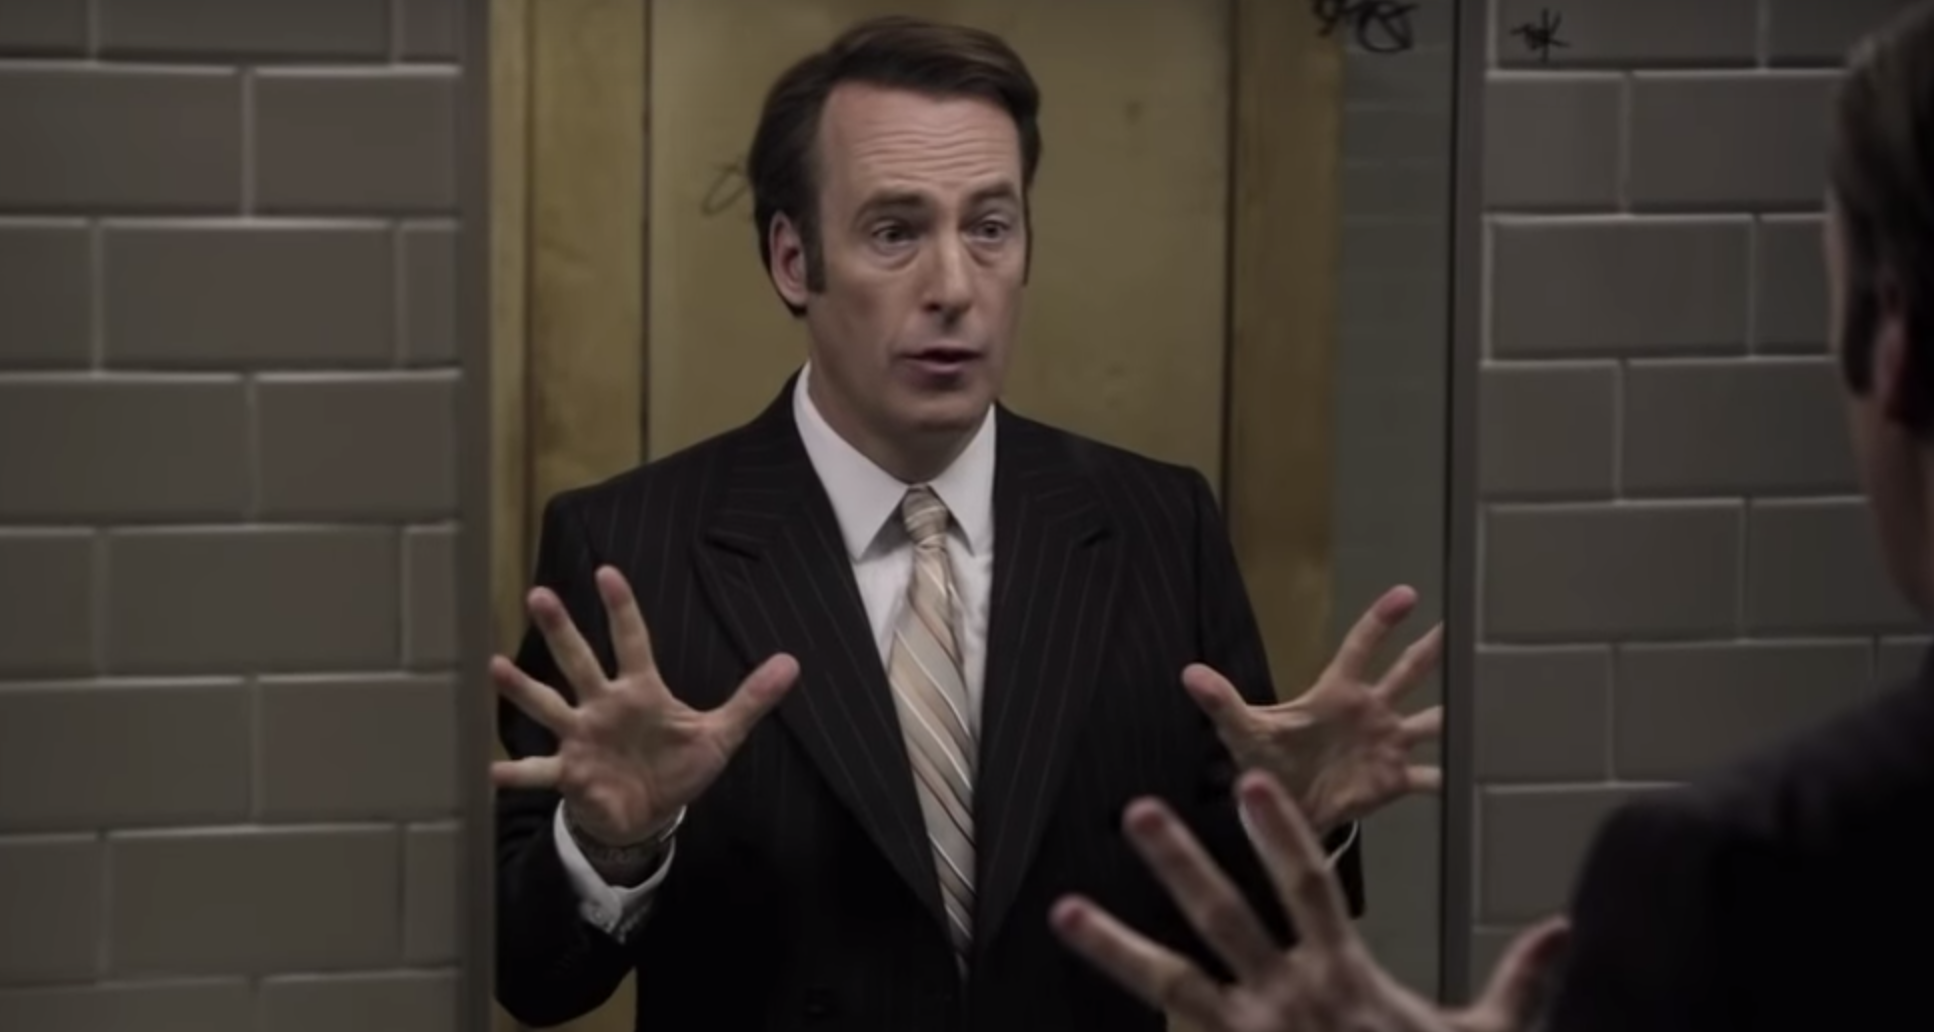 Bob Odenkirk to Release 'Comedy Comedy Comedy Drama: A Memoir' in 2022